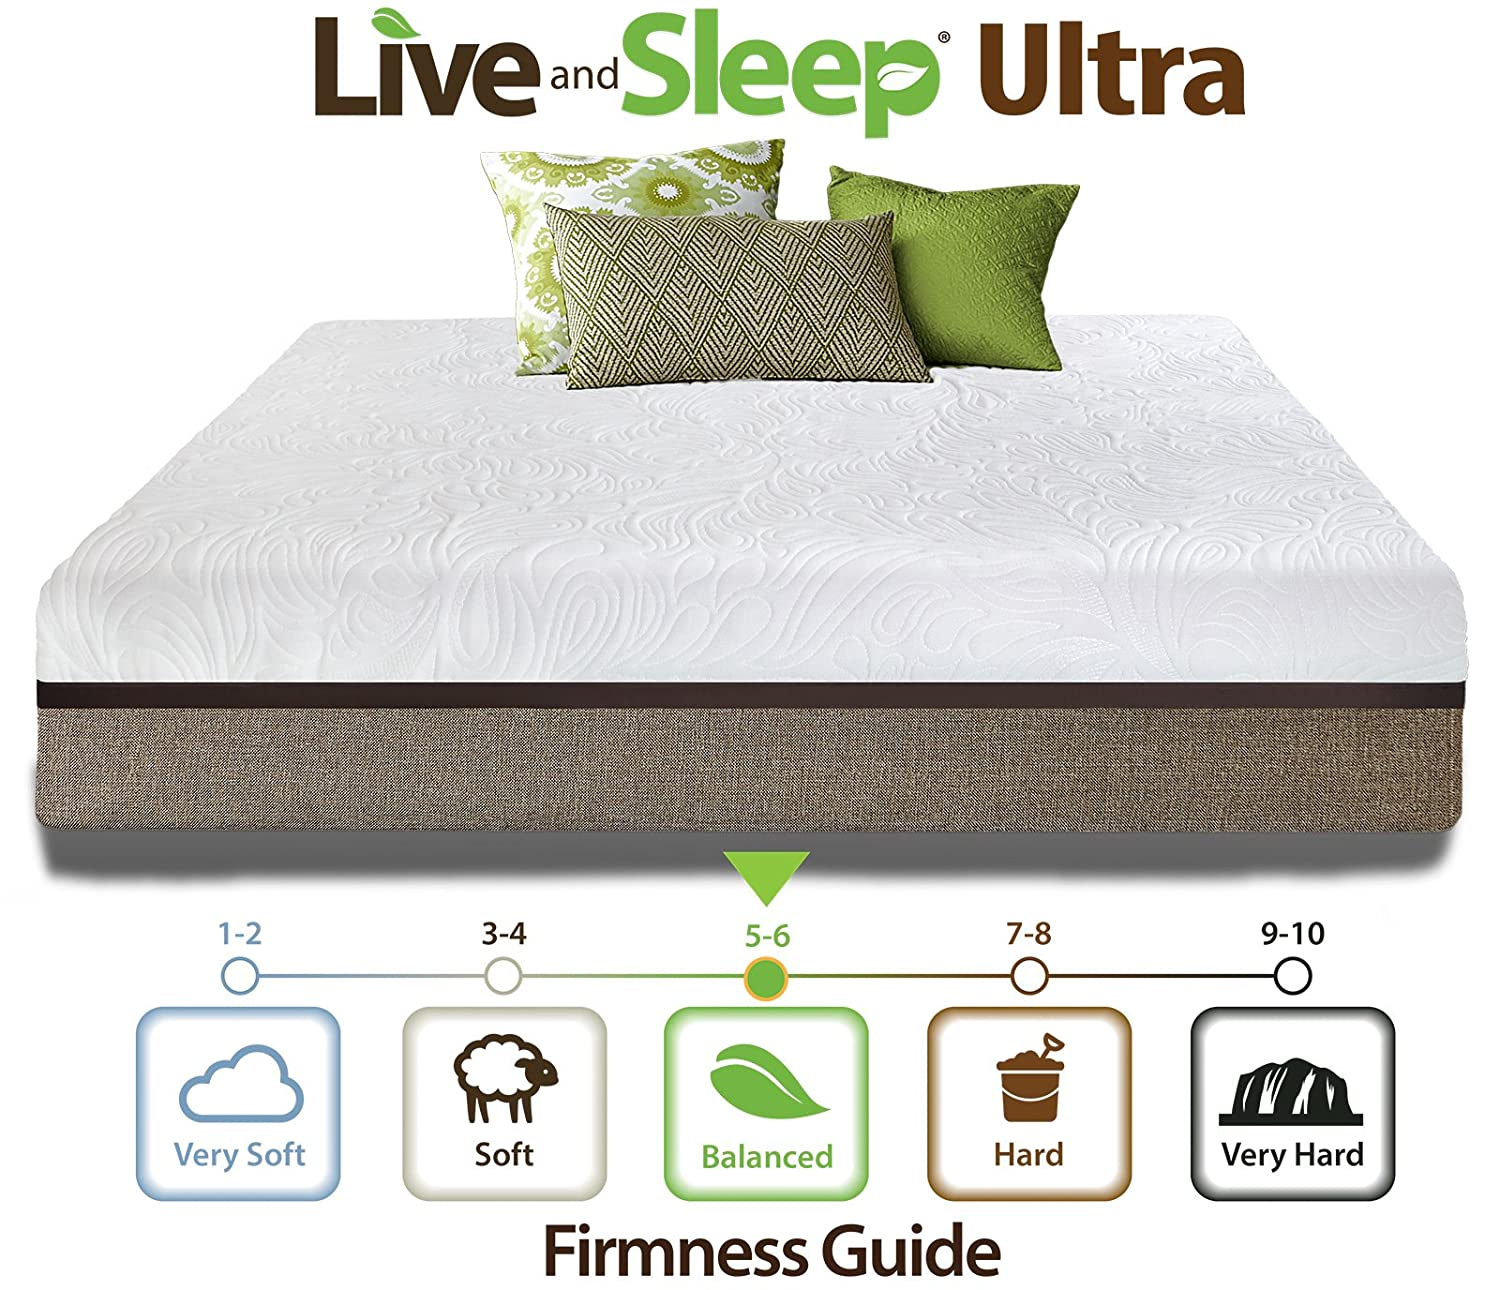 amazon com live and sleep resort ultra california king size 12 inch